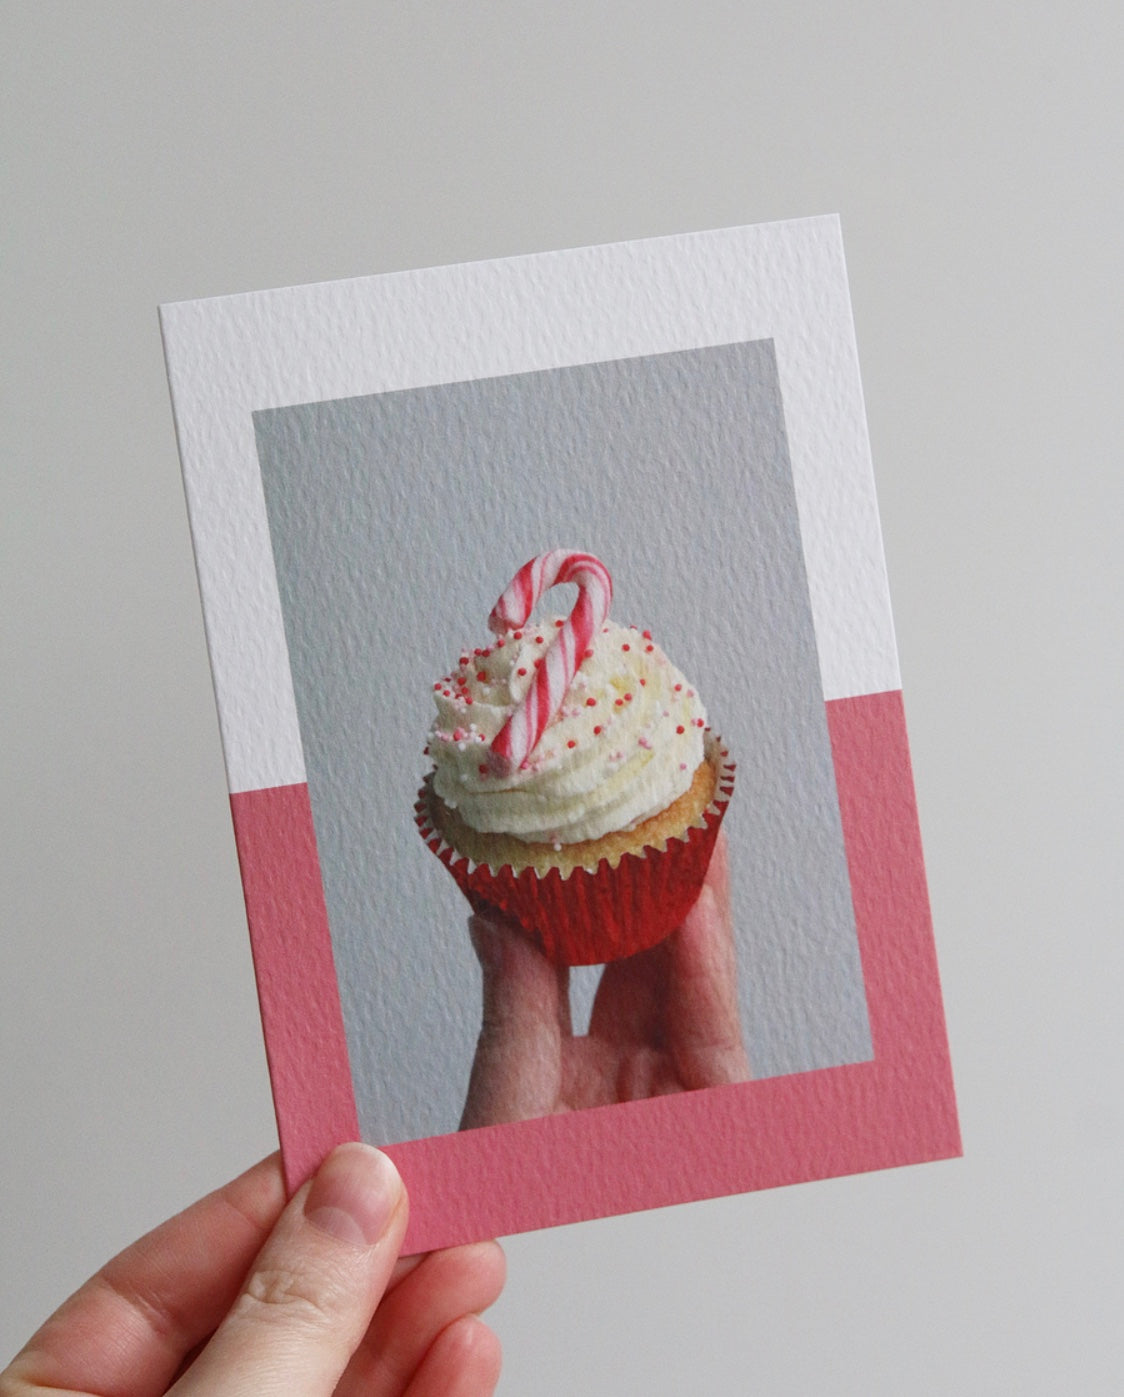 Candy Cane Cupcake Photo Christmas Card